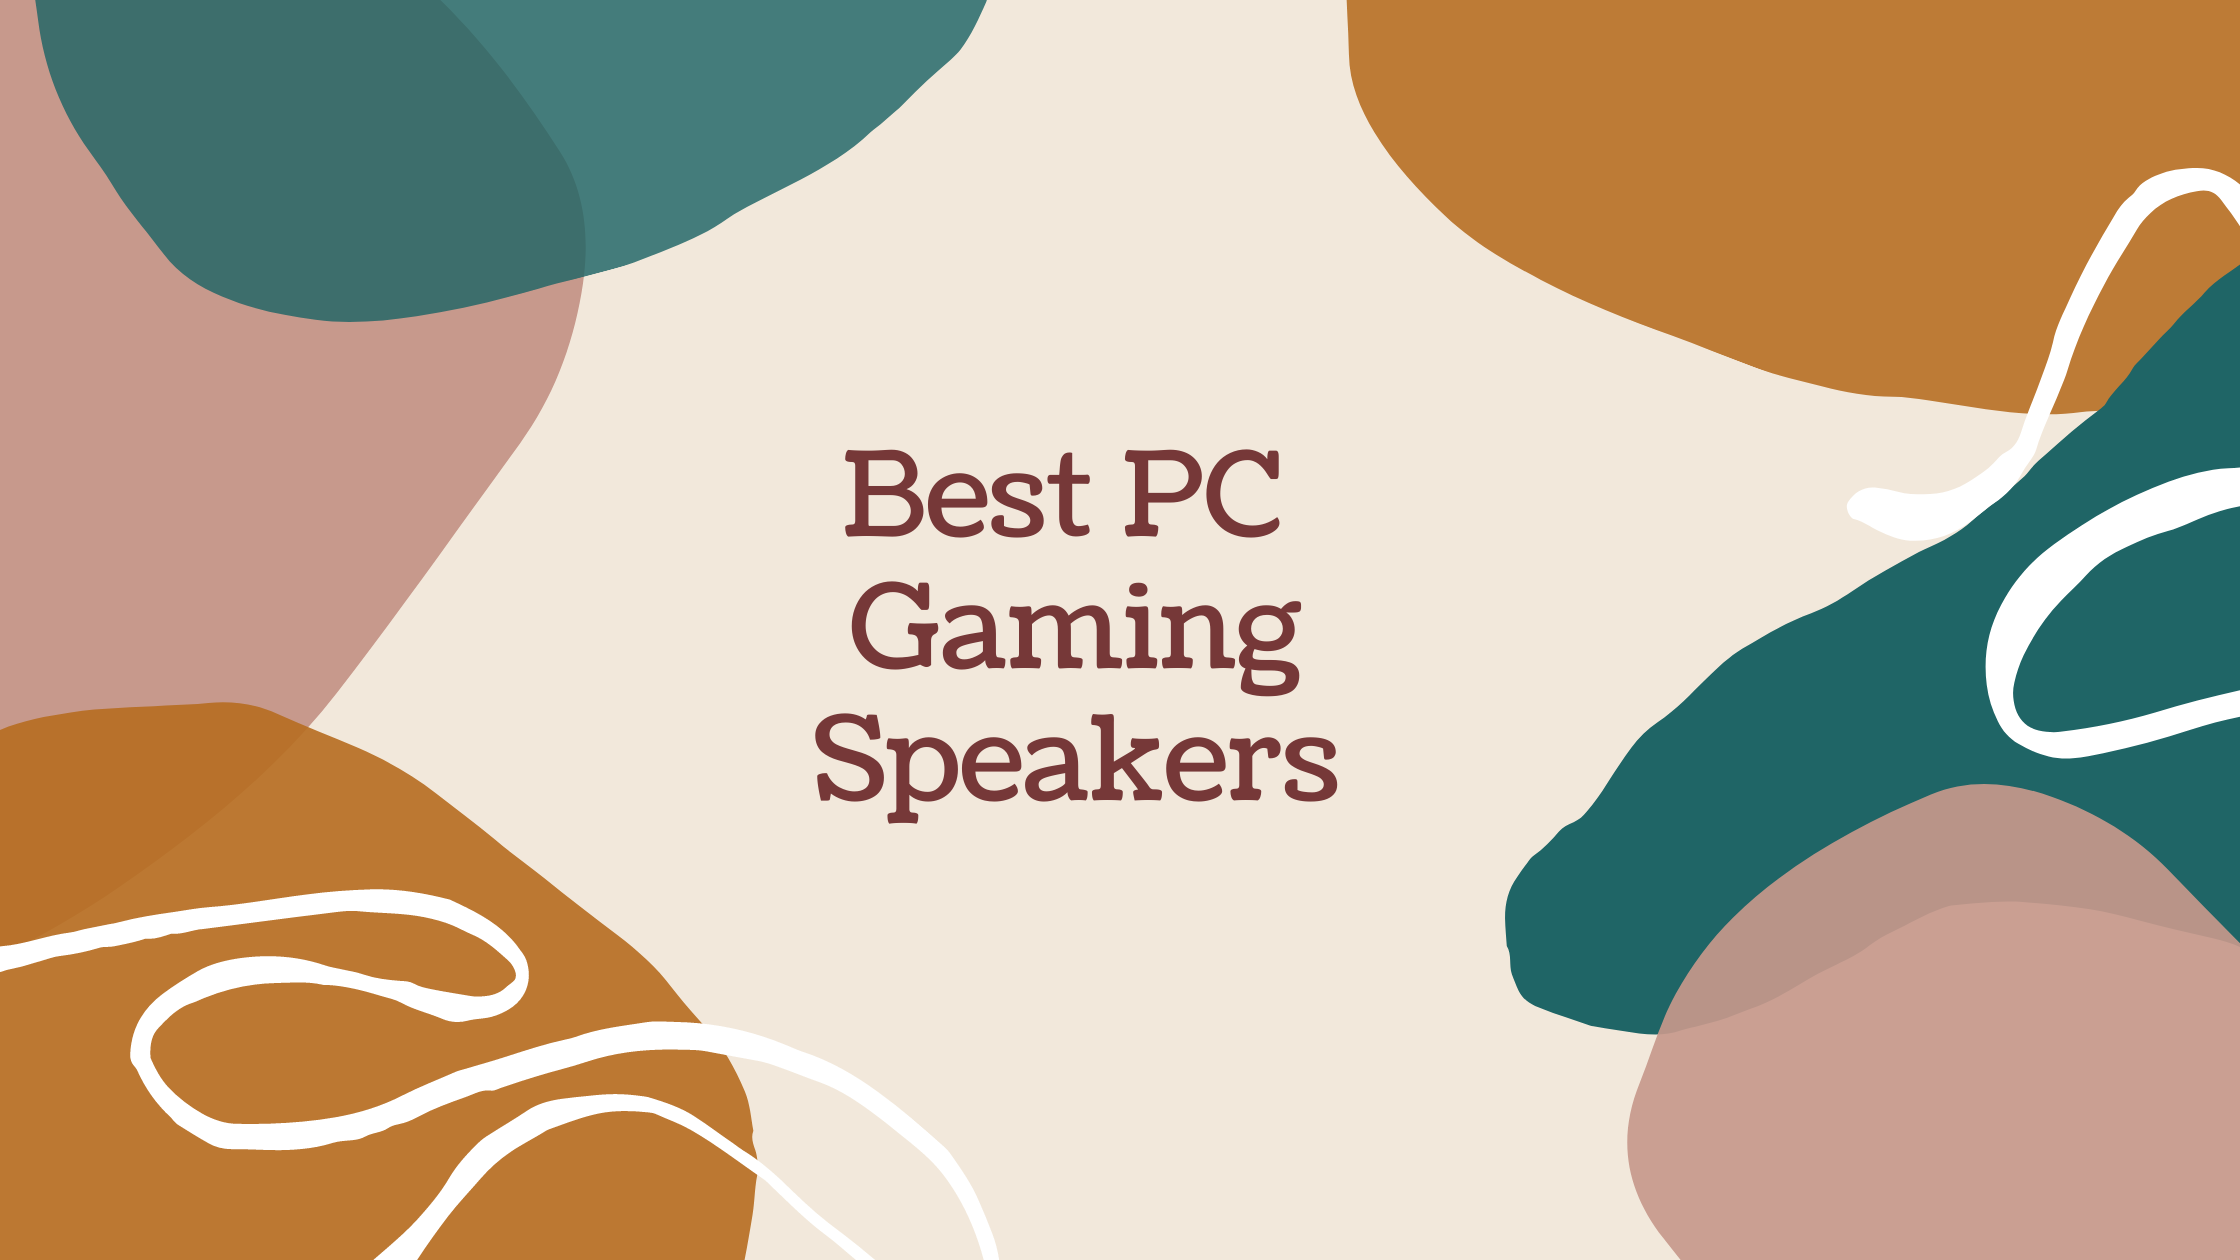 Best PC Gaming Speakers